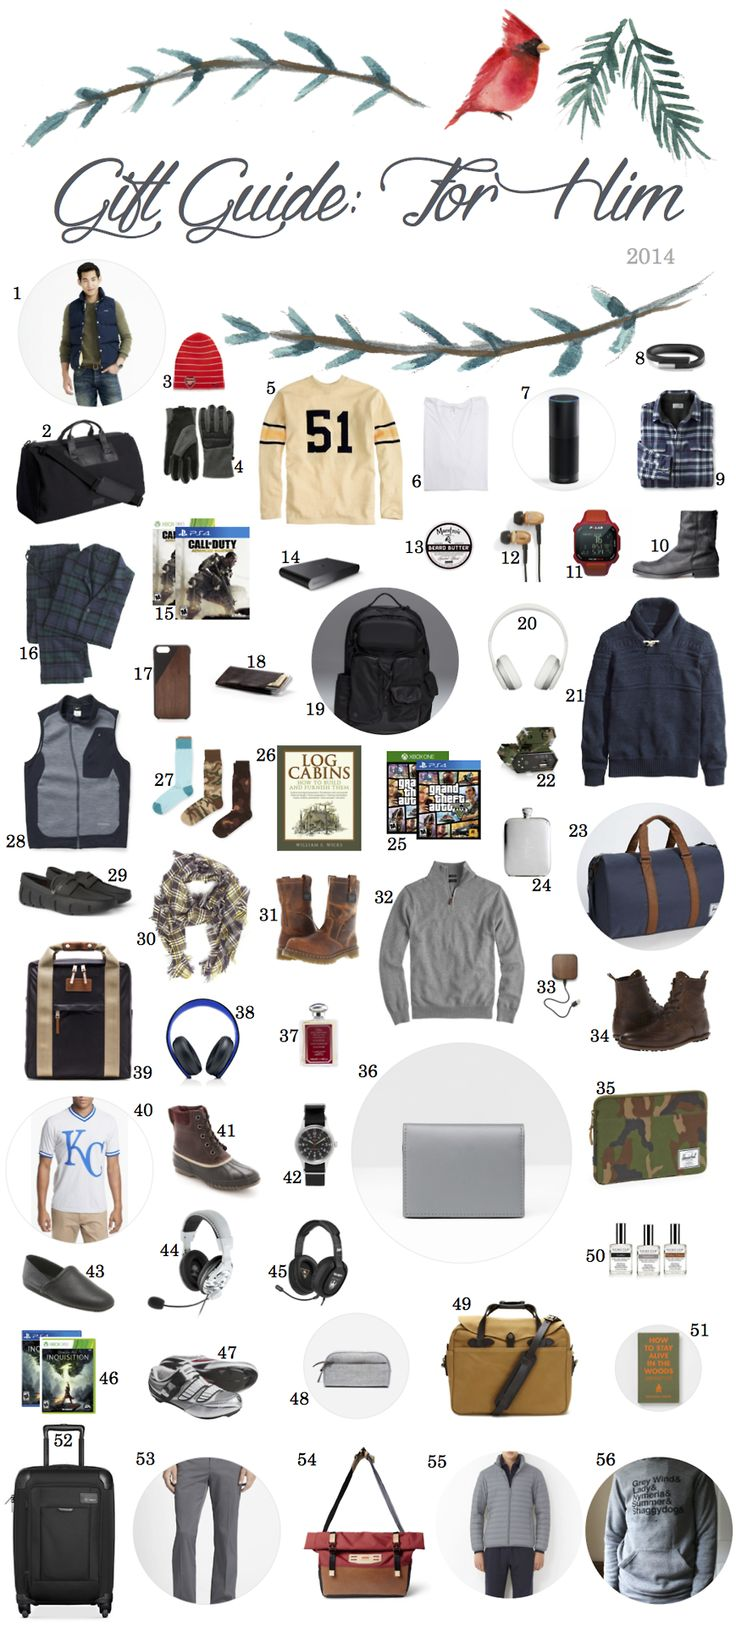 Don't forget to keep an eye out for Black Friday discounts/bundles on some of the electronic stuff here.  J.Crew Penfield Outlook Vest, $175 Ben Minkoff Black Canvas Gym Bag, $95 (from $295) Puma Arsenal Beanie, $28 The North Face ThermoBall Glove, $50 Ebbets Field Flannel Brooklyn Dodgers Jersey, $225 American Apparel 7-Pack V-Neck, $118 Amazon Echo, $99 for Amazon Prime members UP 24 by Jawbone Band, $115 (from $129)  LL Bean Fleece-Lined Flannel Shirt, $64 H&M Leather Boots, ...